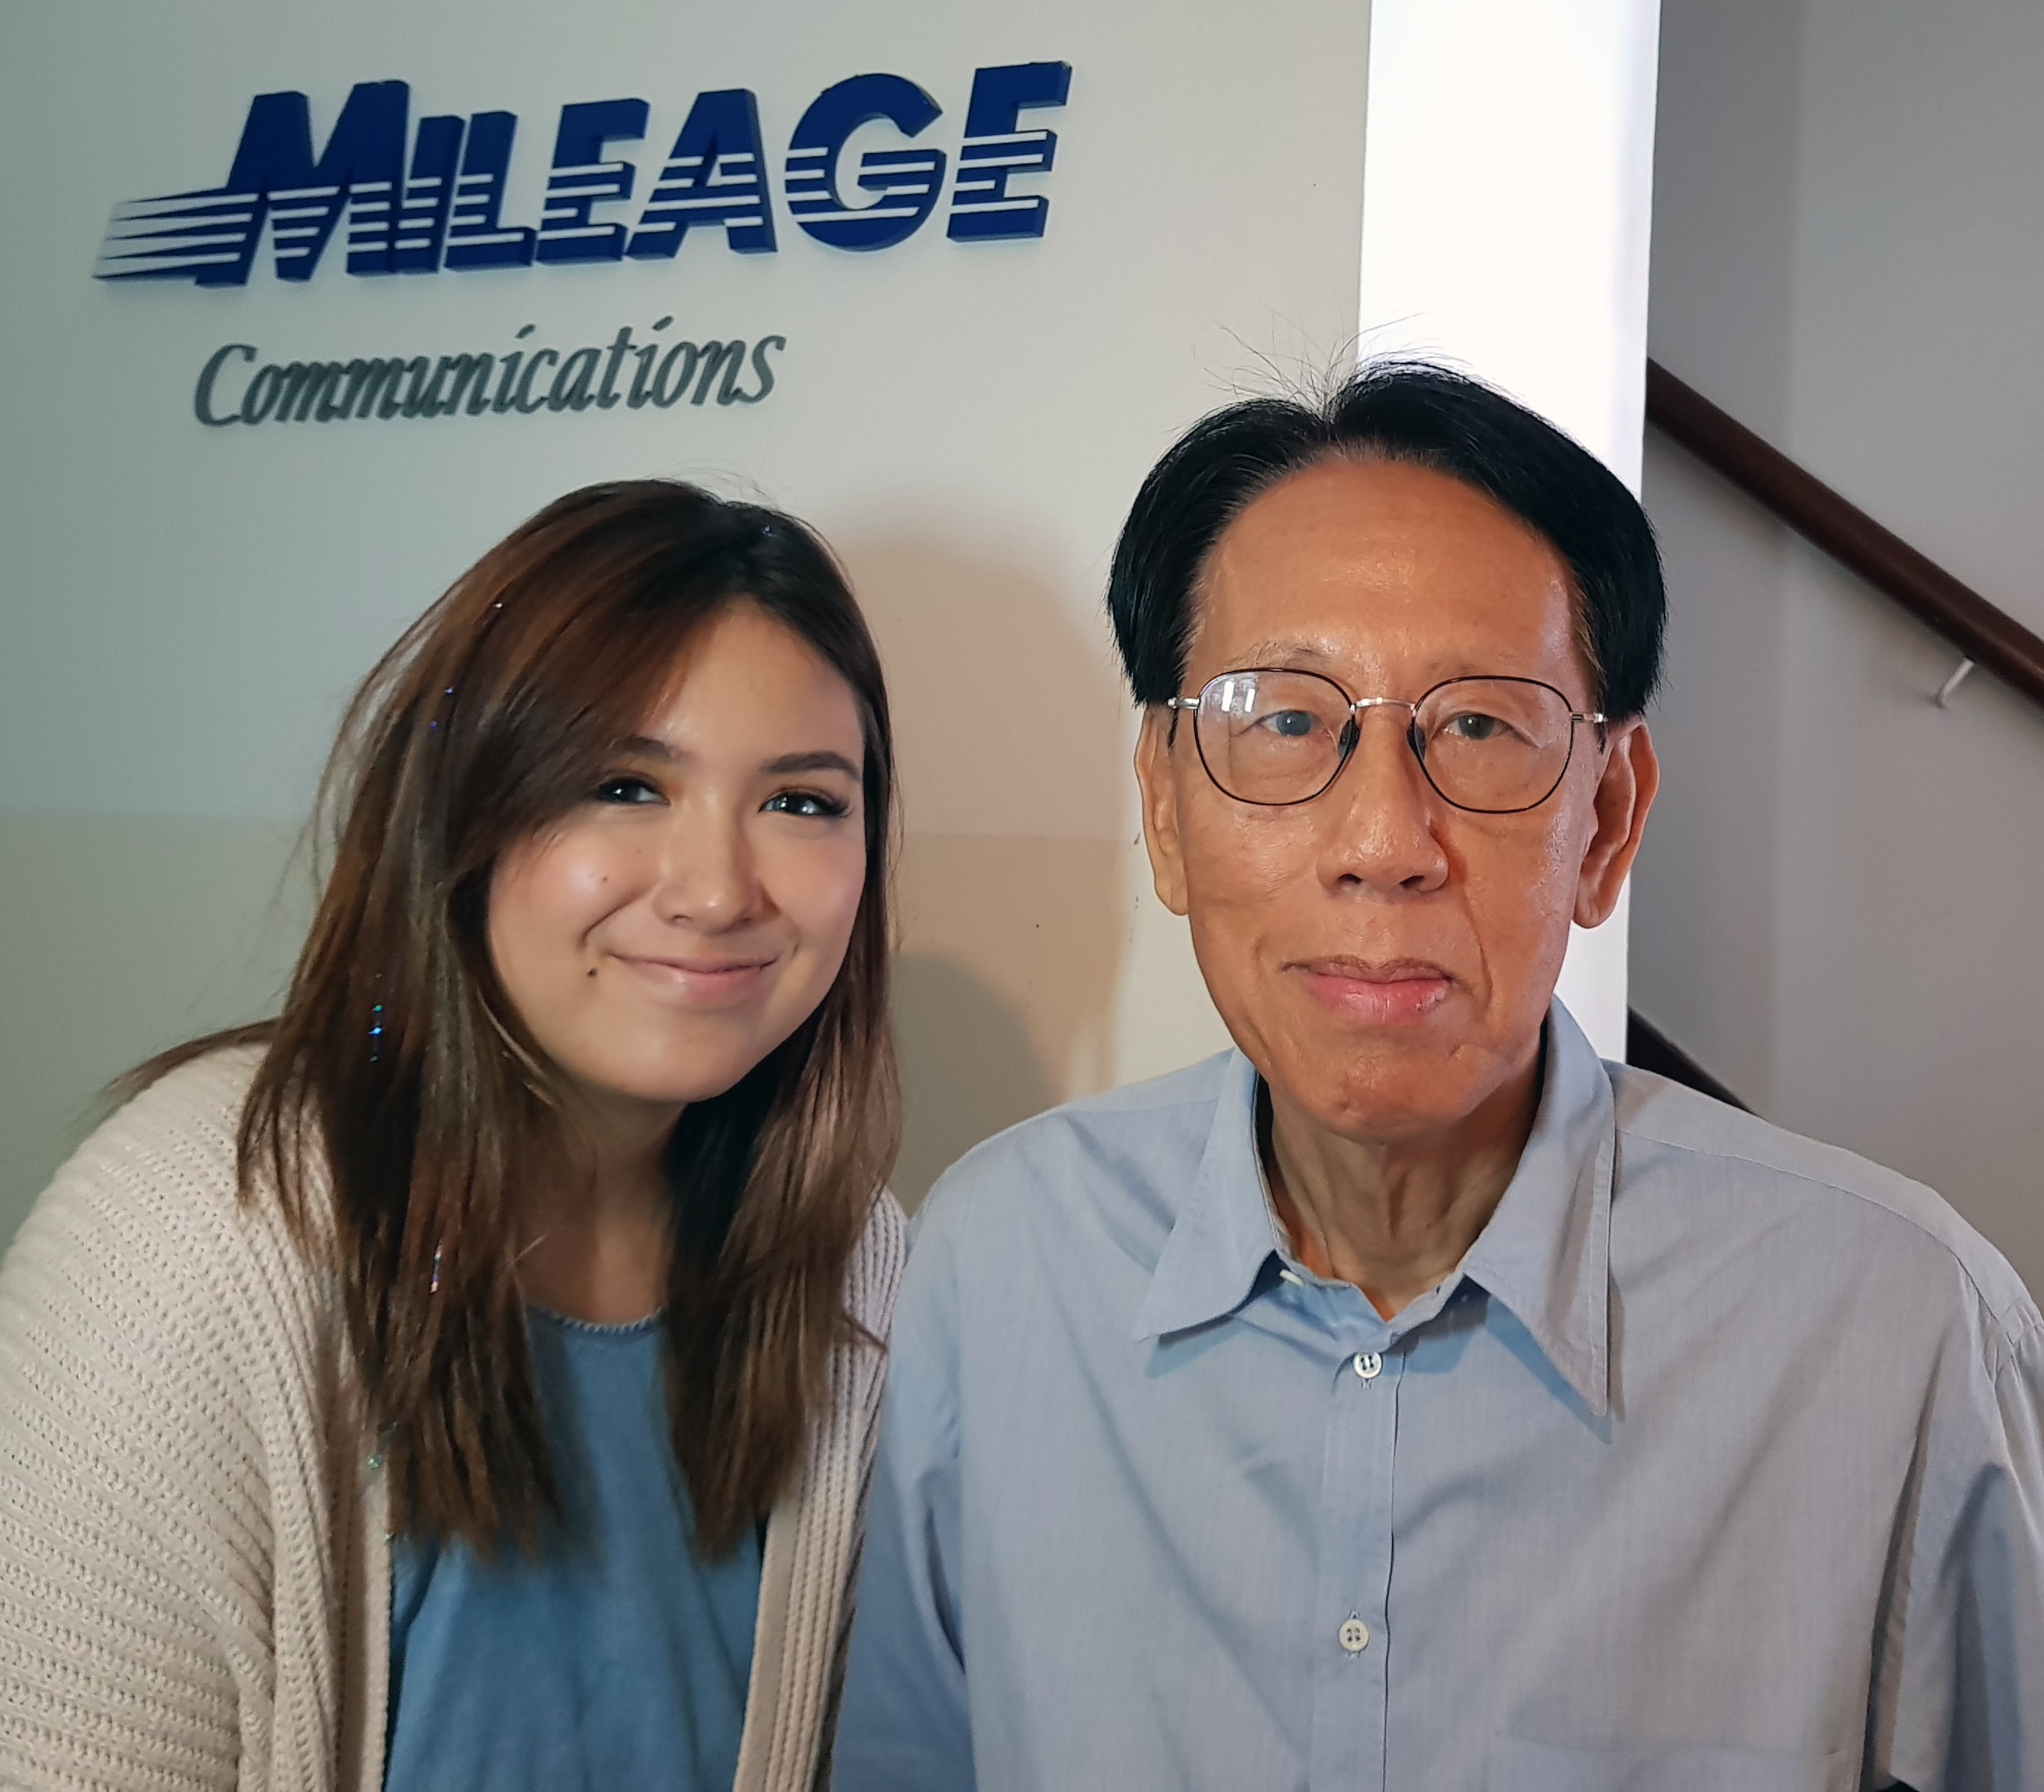 Mileage Communications Group Chairman Mr. Yap Boh Tiong With Chiara Toto, An Intern From Ngee Ann Polytechnic's School Of Film & Media Studies.